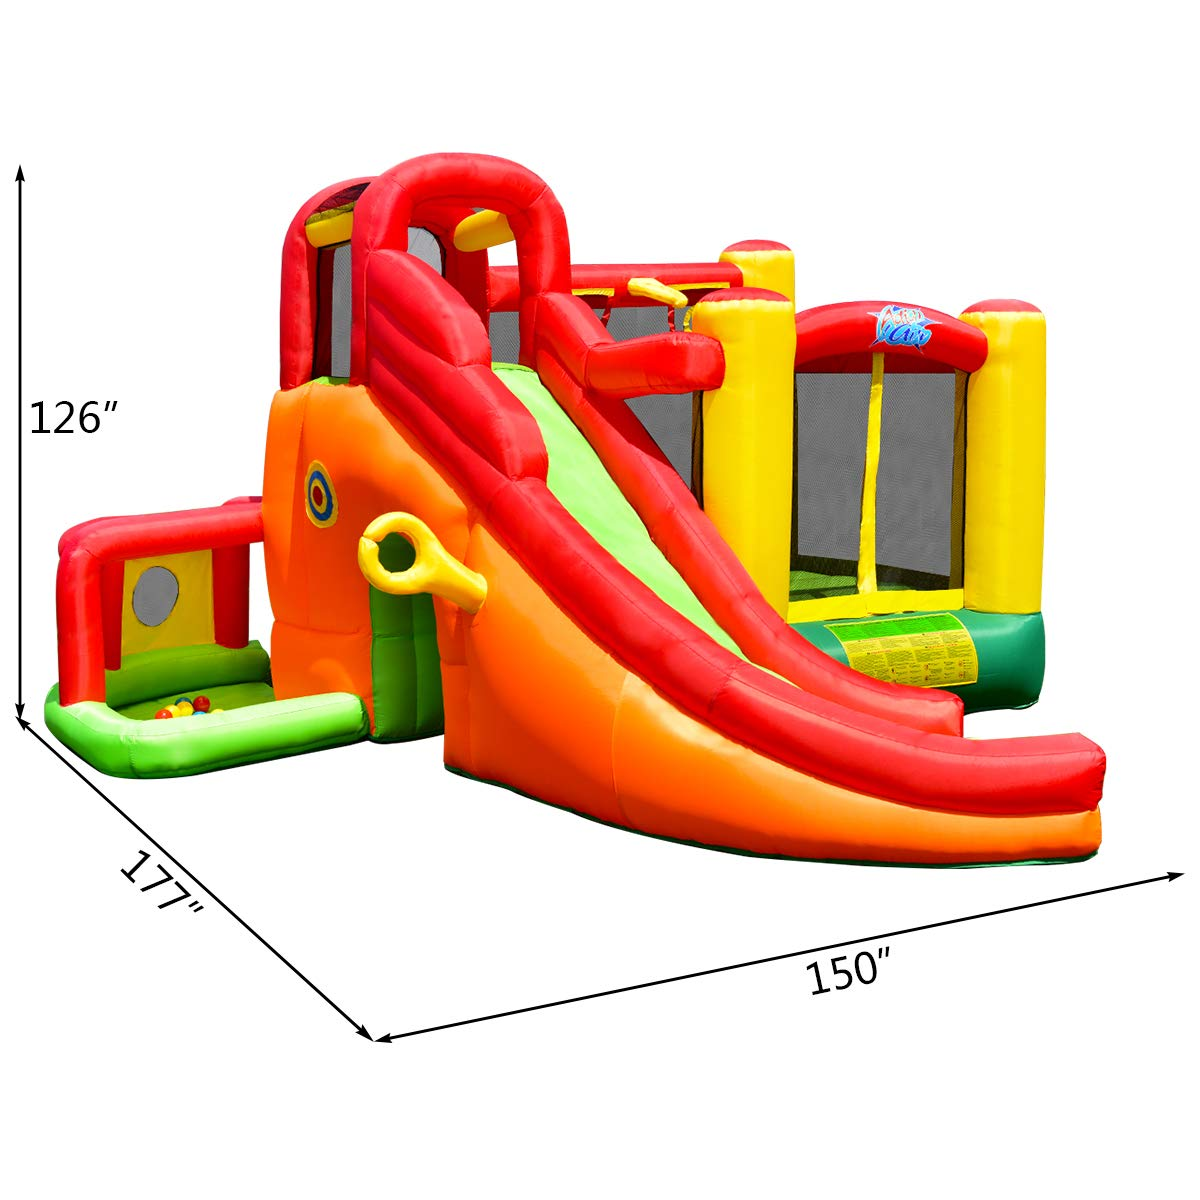 Costzon Inflatable Bounce House, 11 in 1 Mighty Kids Jump and Slide Castle w/ Climbing Wall, Tunnel, Basketball Hoop, Playing Area, Including Oxford Carry Bag, Repairing Kit, Stakes, 780W Air Blower by Costzon (Image #7)